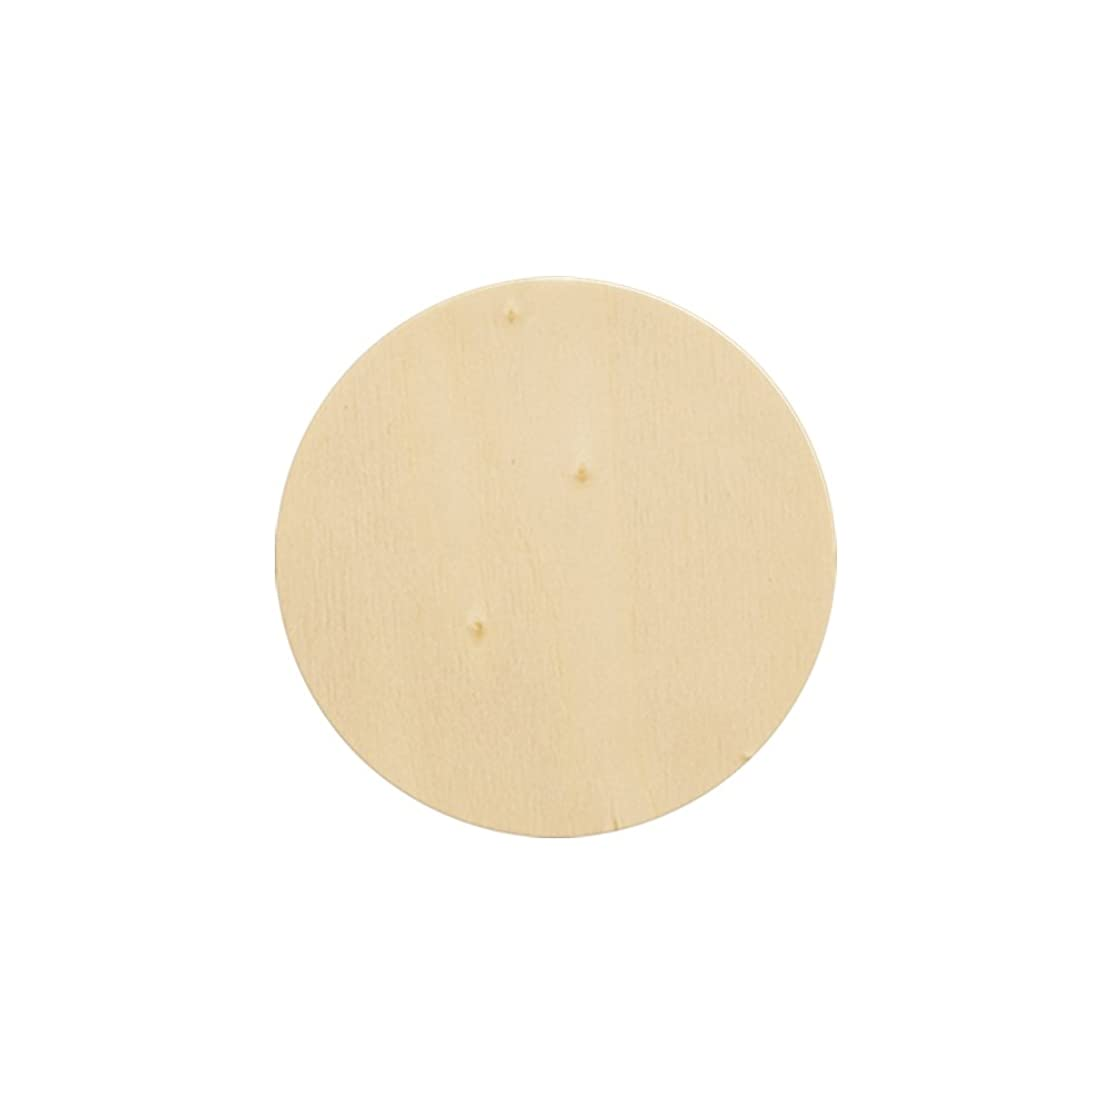 Natural Unfinished Round Wood Circle Cutout 3 Inch - Bag of 100